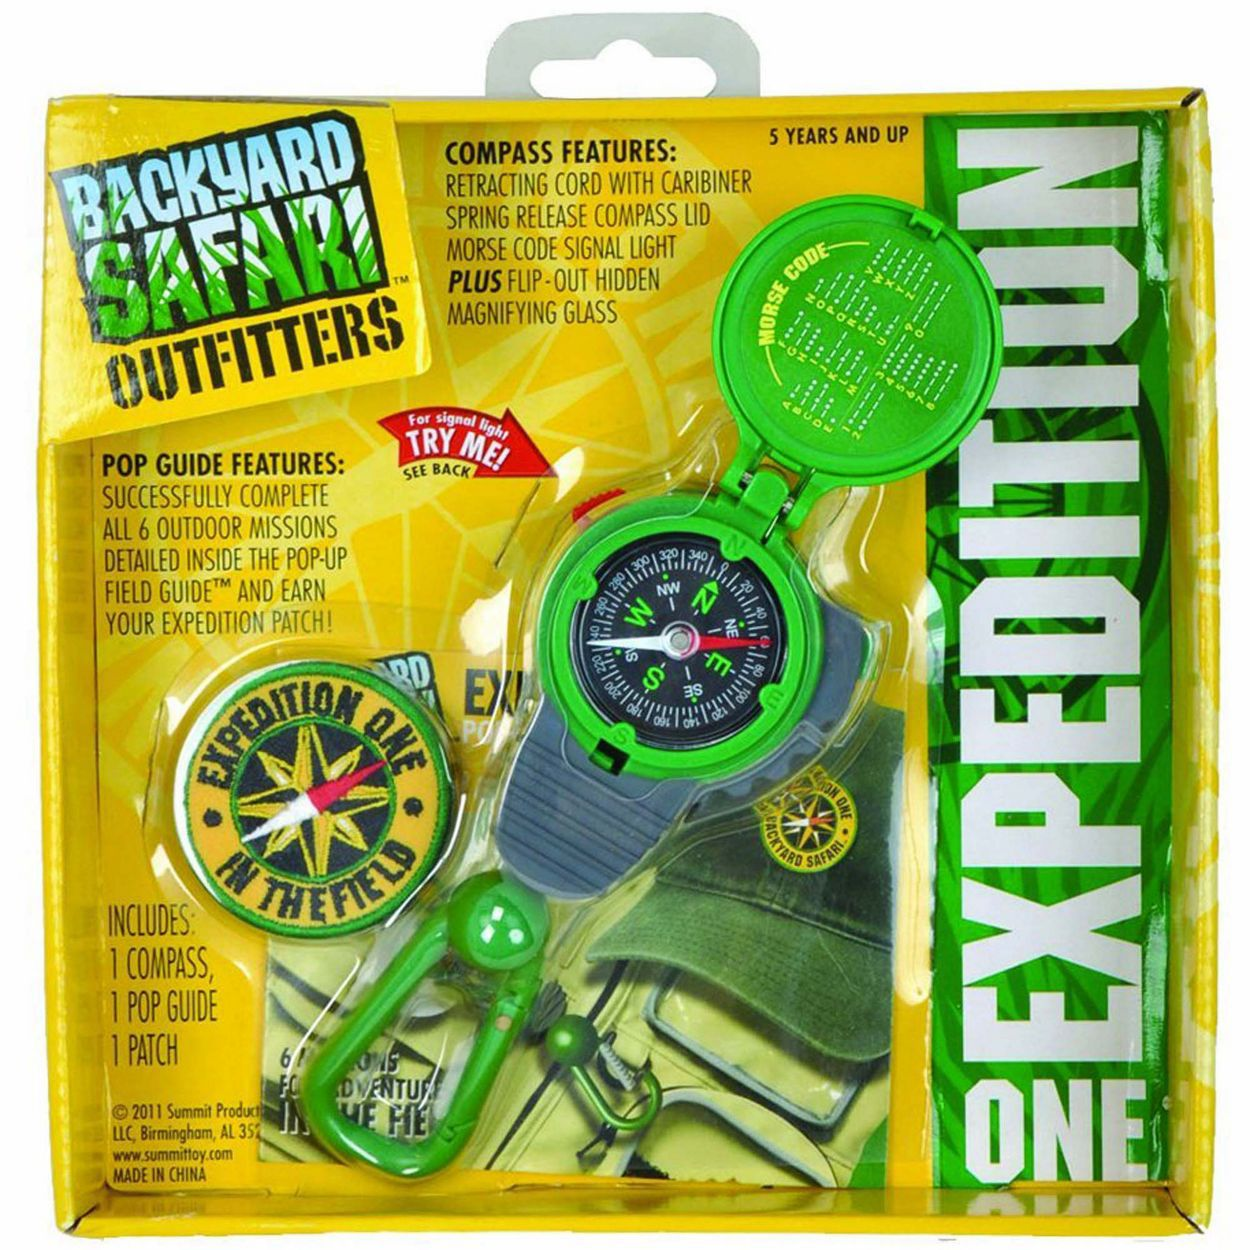 Backyard Safari 3 in 1 Compass